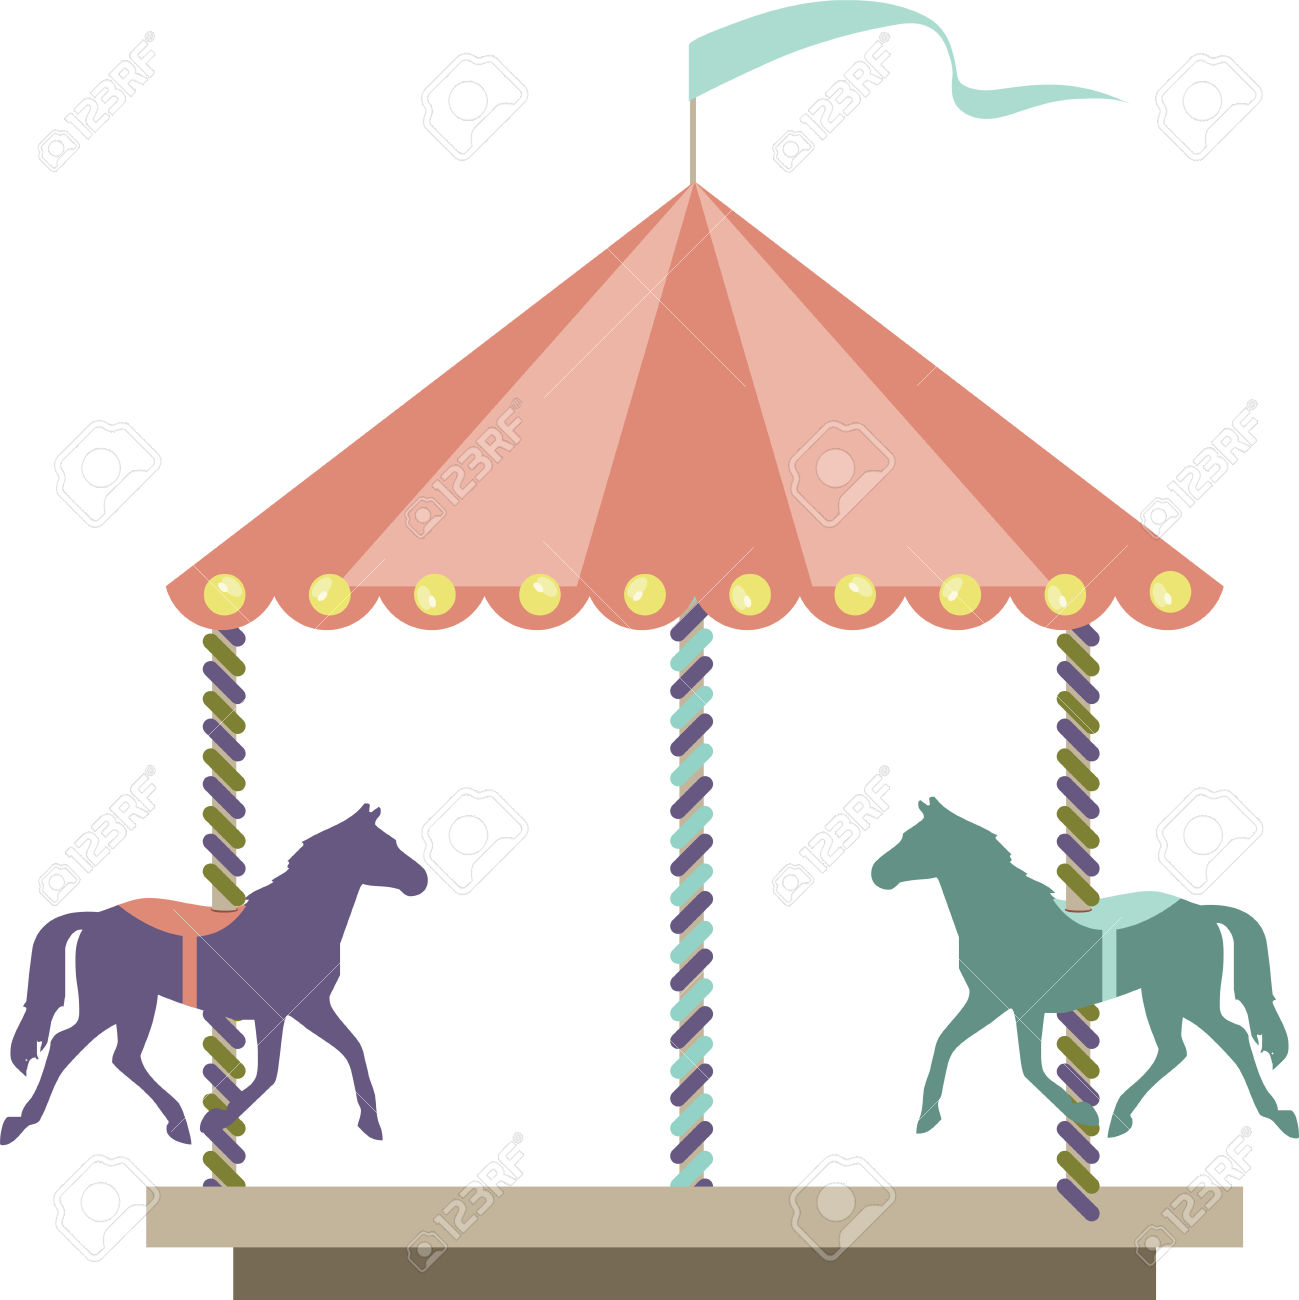 Carousel Amusement Park Or Carnival Ride With Colorful Horses.